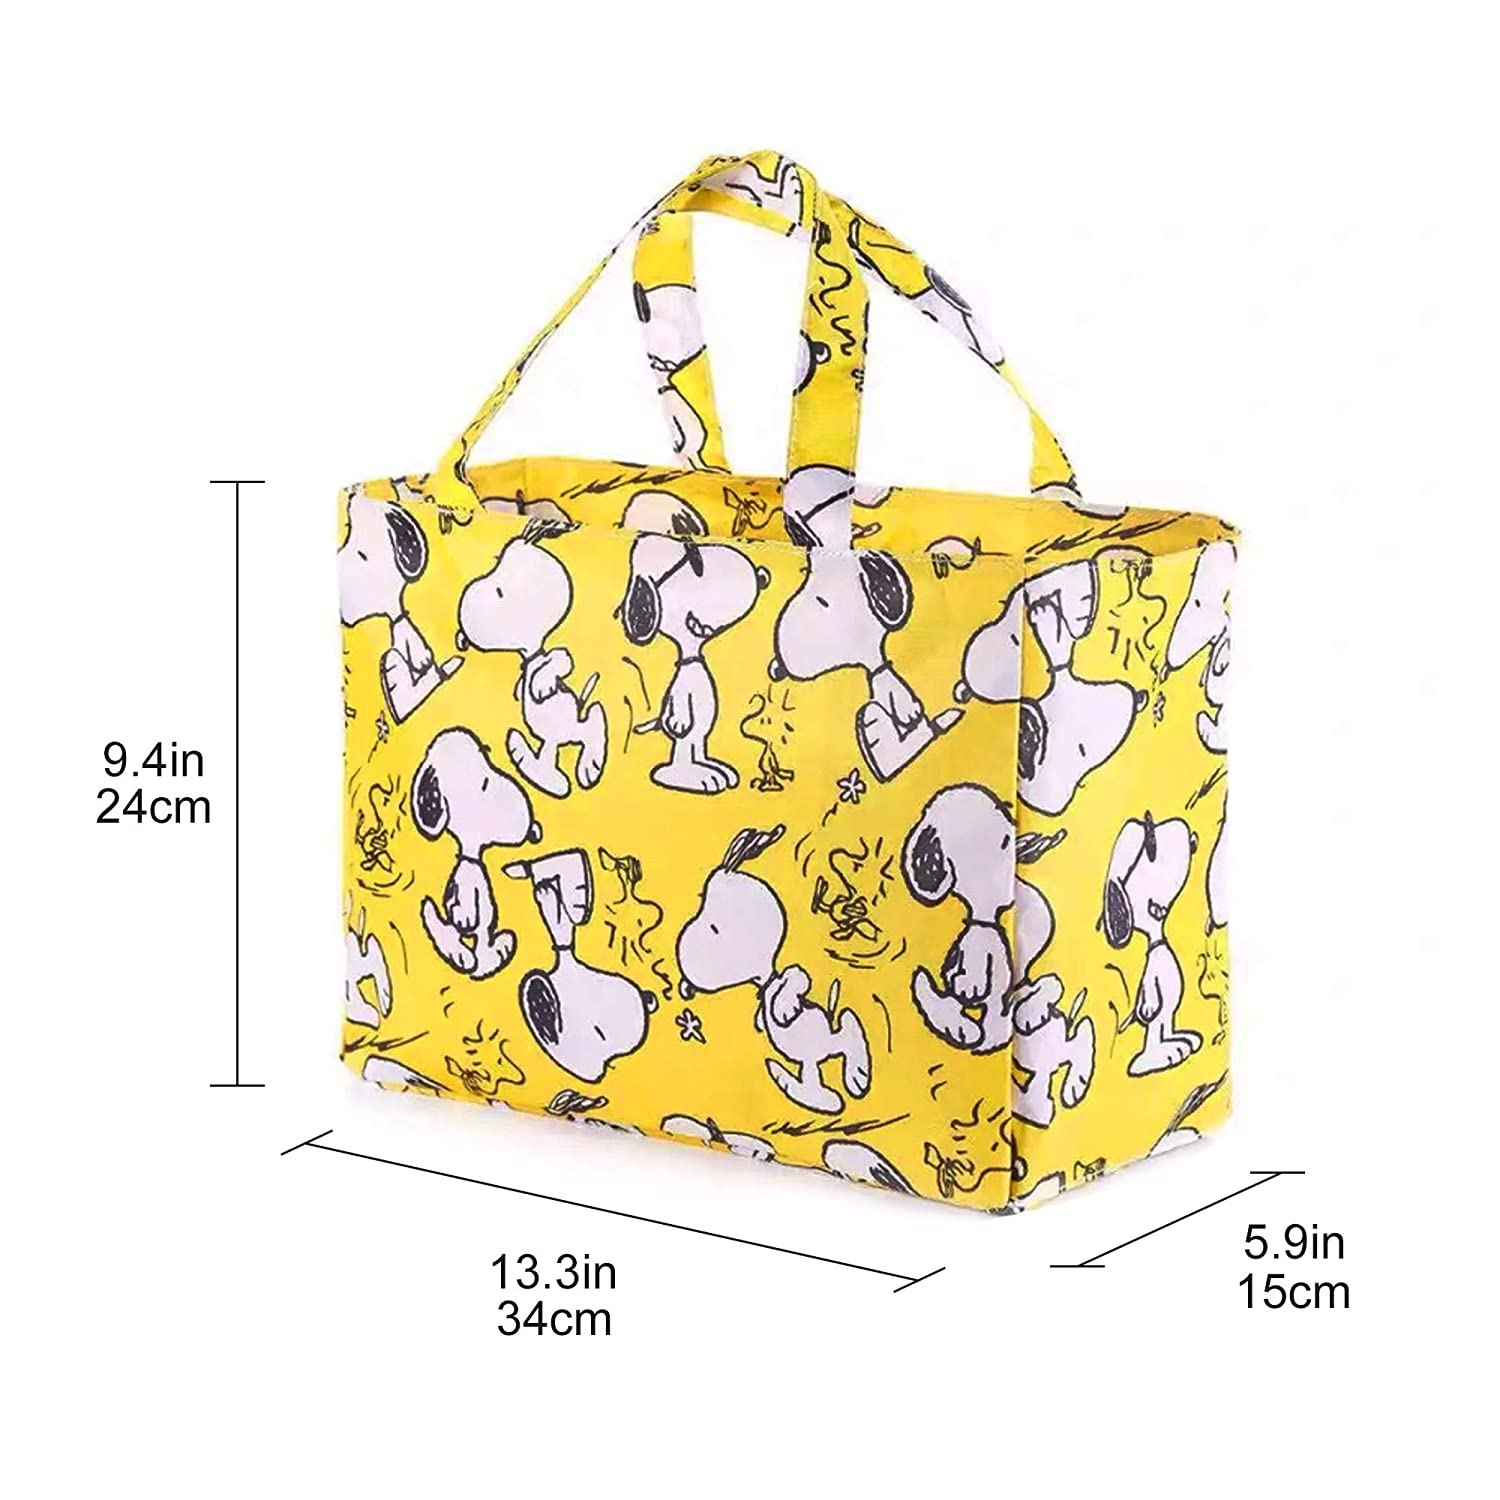 Finex Yellow Snoopy and Woodstocks Waterproof PVC Rectangular Hand Carry Diaper Bag Tote with Multiple Dividers Open Pockets Handles Zipper Closure